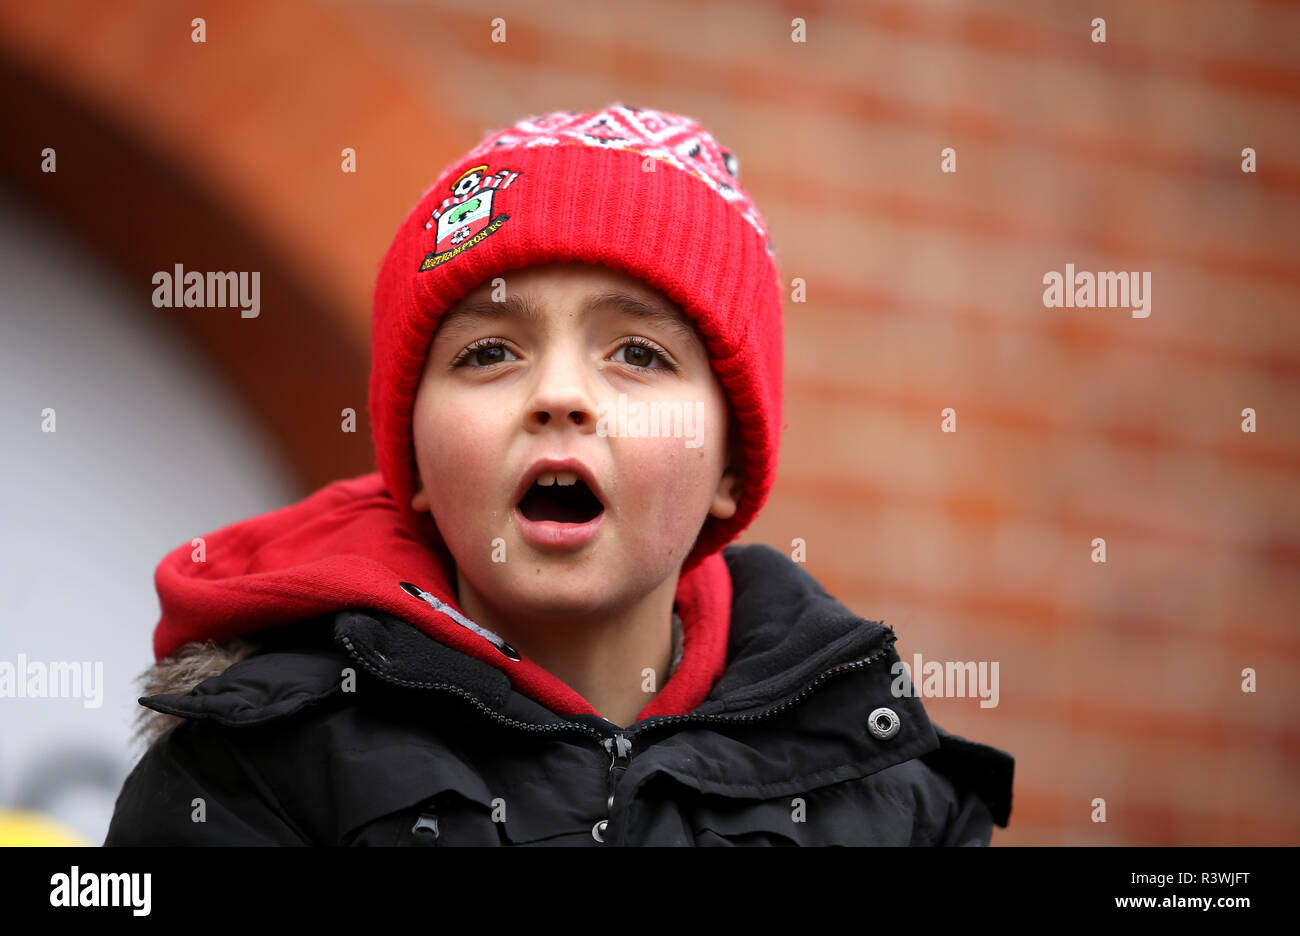 Southampton fan outside the ground before the Premier League match at Craven Cottage, London. - Stock Image